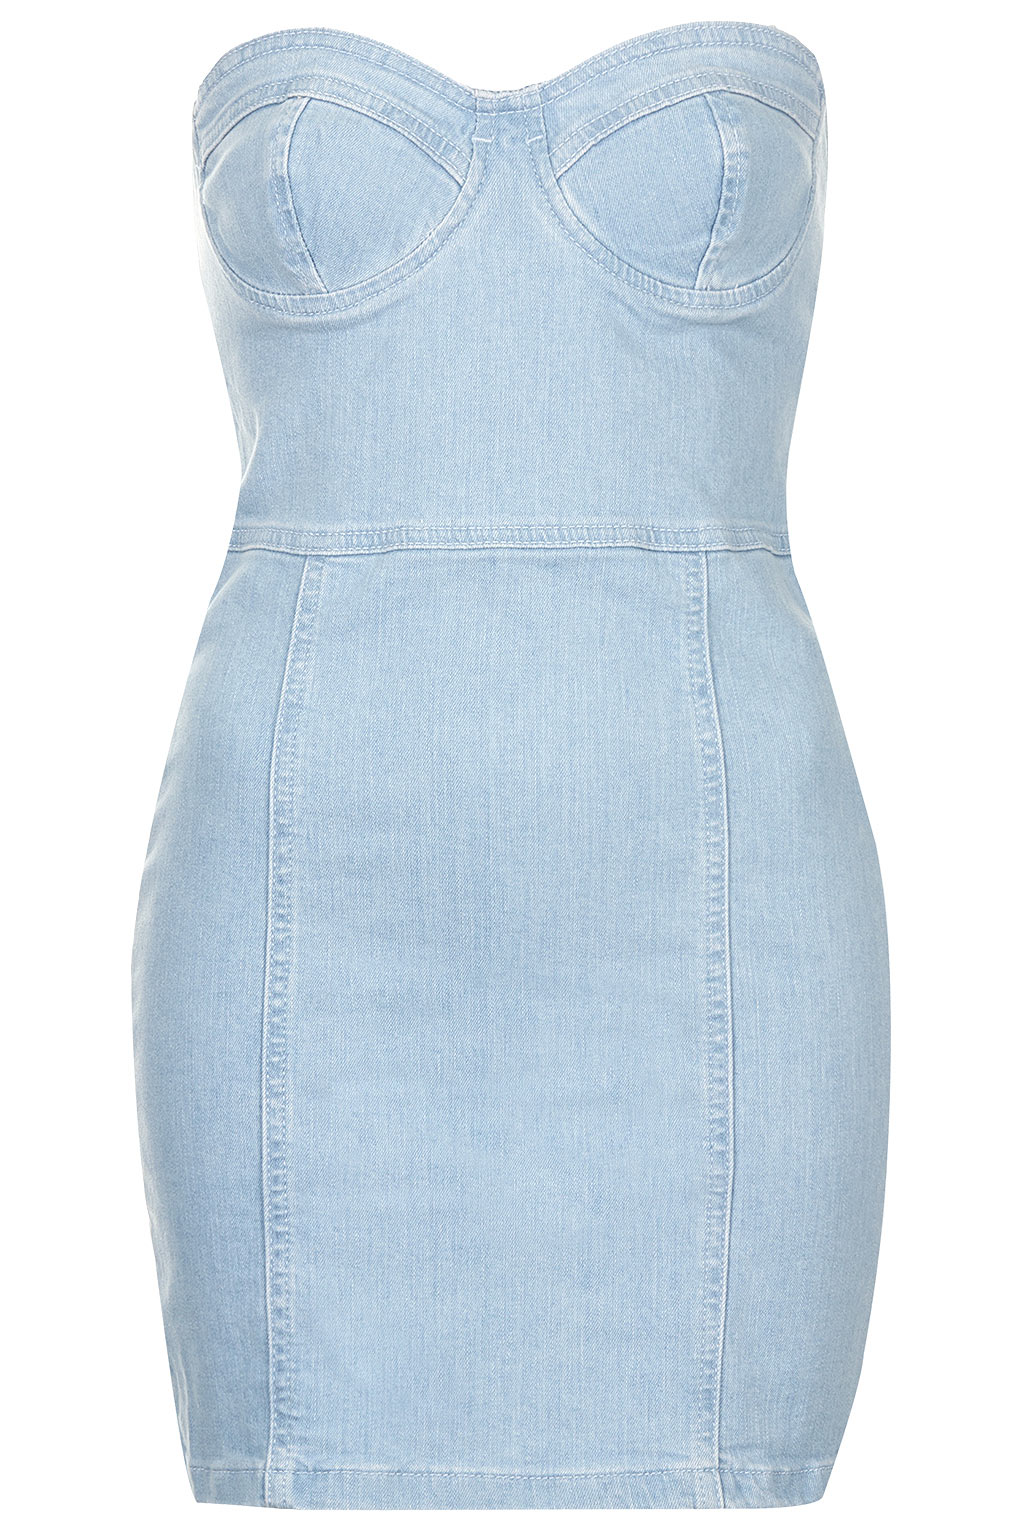 Topshop denim bandeau dress in blue denim lyst for Womens denim shirts topshop